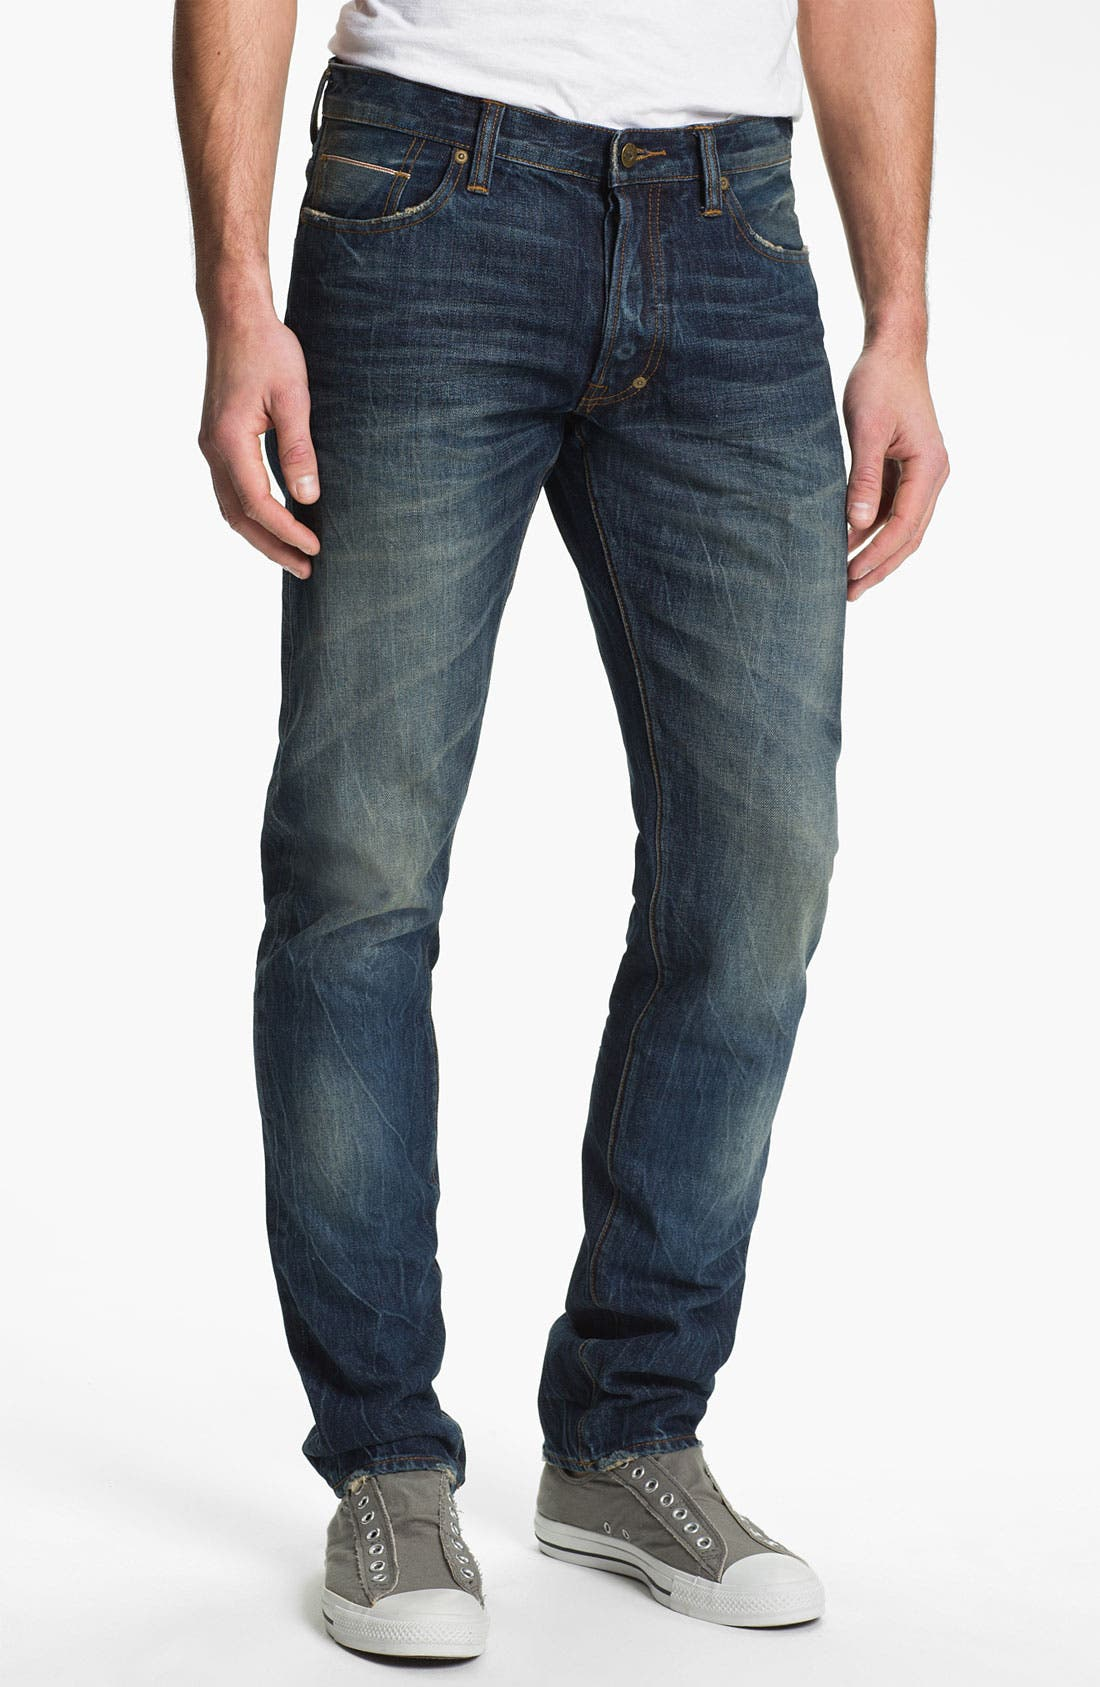 Alternate Image 1 Selected - PRPS Barracuda Straight Leg Selvedge Jeans (1 Year)